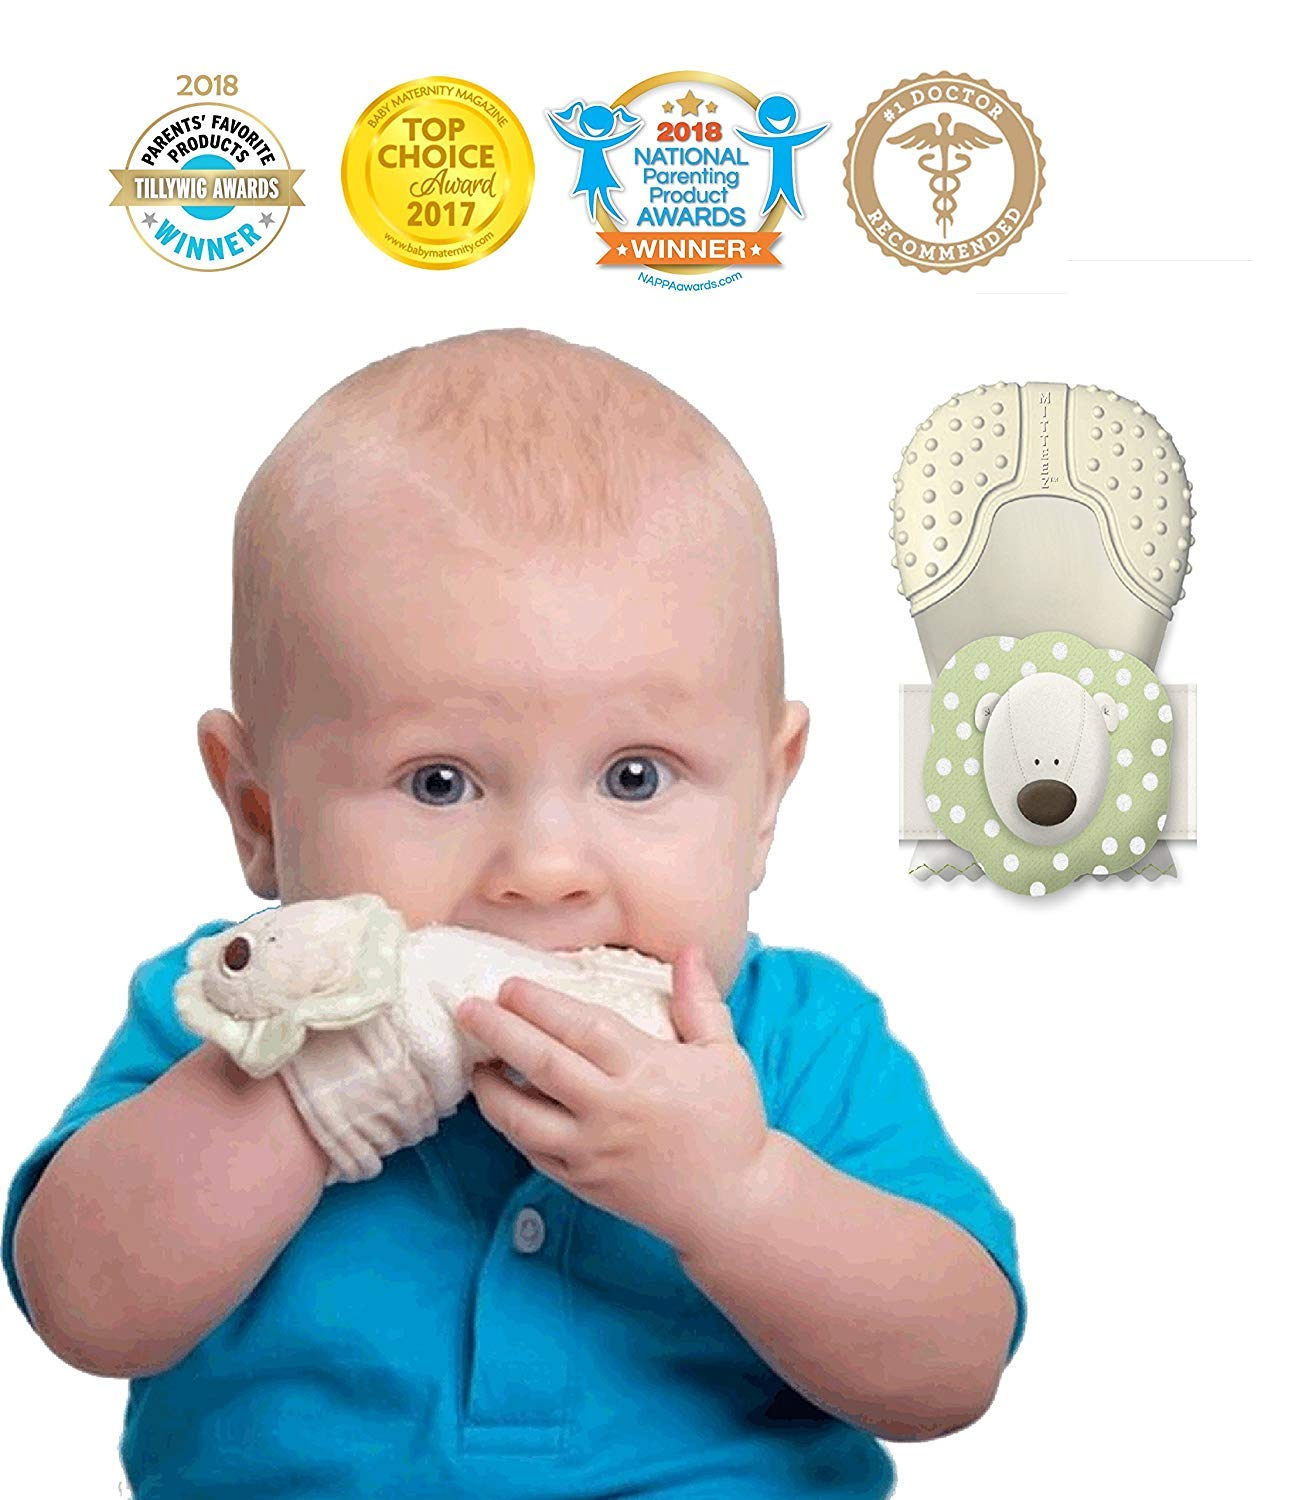 Mitteez Organic Baby Teether Mitten and Keepsake Toy for Babies 0-8 Months - Green by MITTEEZ